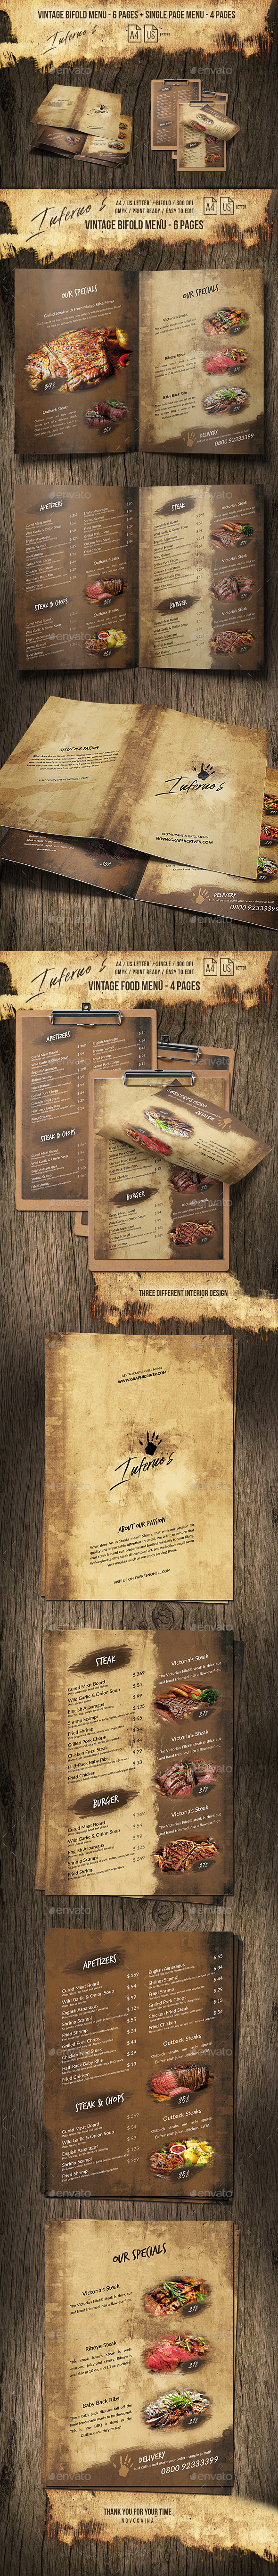 Infernos Vintage Menu - A4 and US Letter - 2 Designs - 10 Pages - Food Menus Print Templates